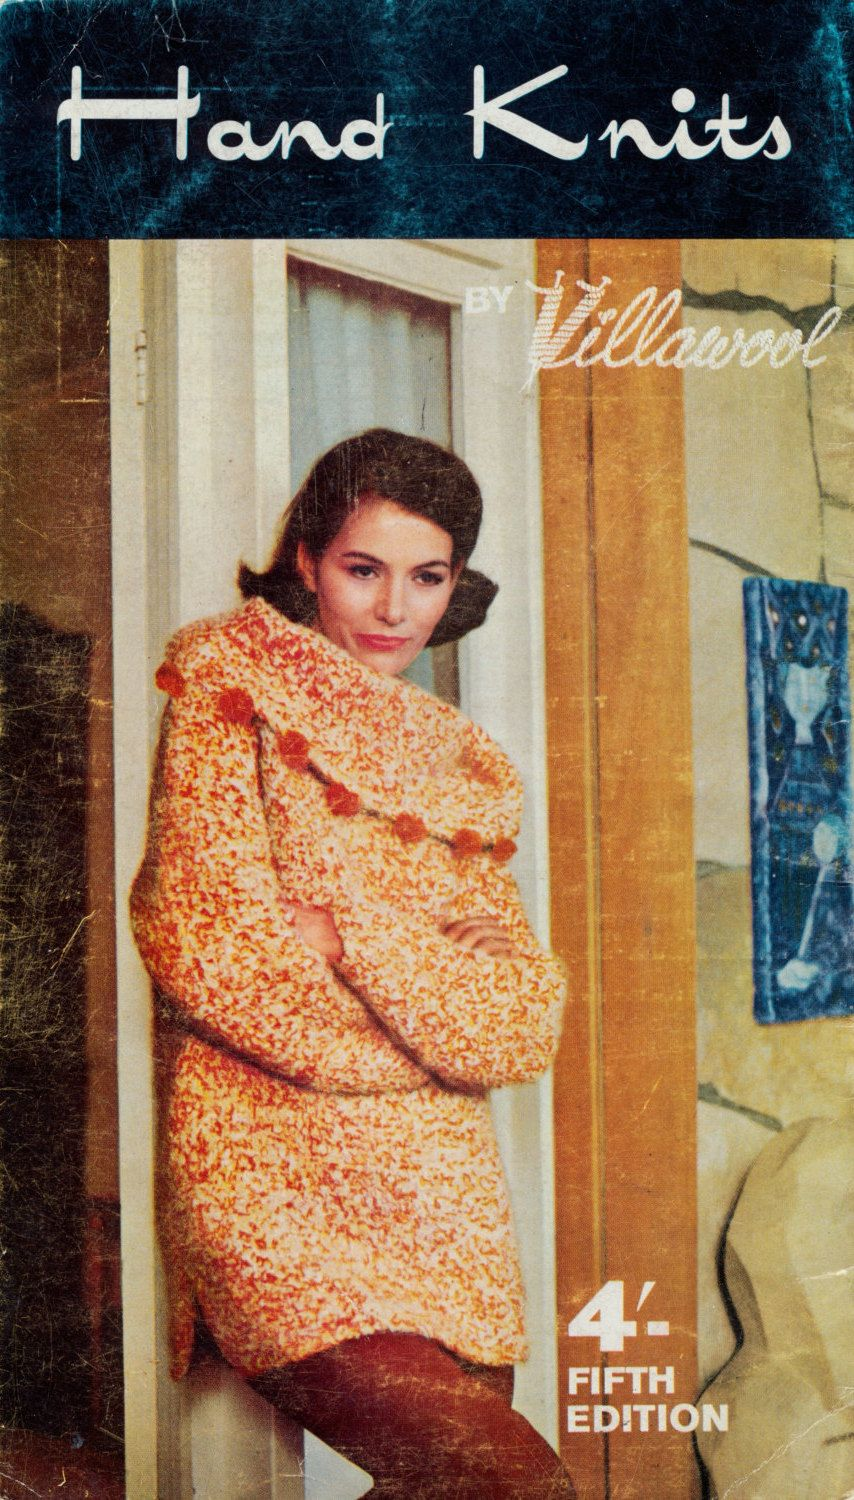 4 vintage knitting patterns from the 1960s jacket 3 variations 4 vintage knitting patterns from the jacket 3 variations of sweaters by thebusytipsygipsy on etsy bankloansurffo Choice Image